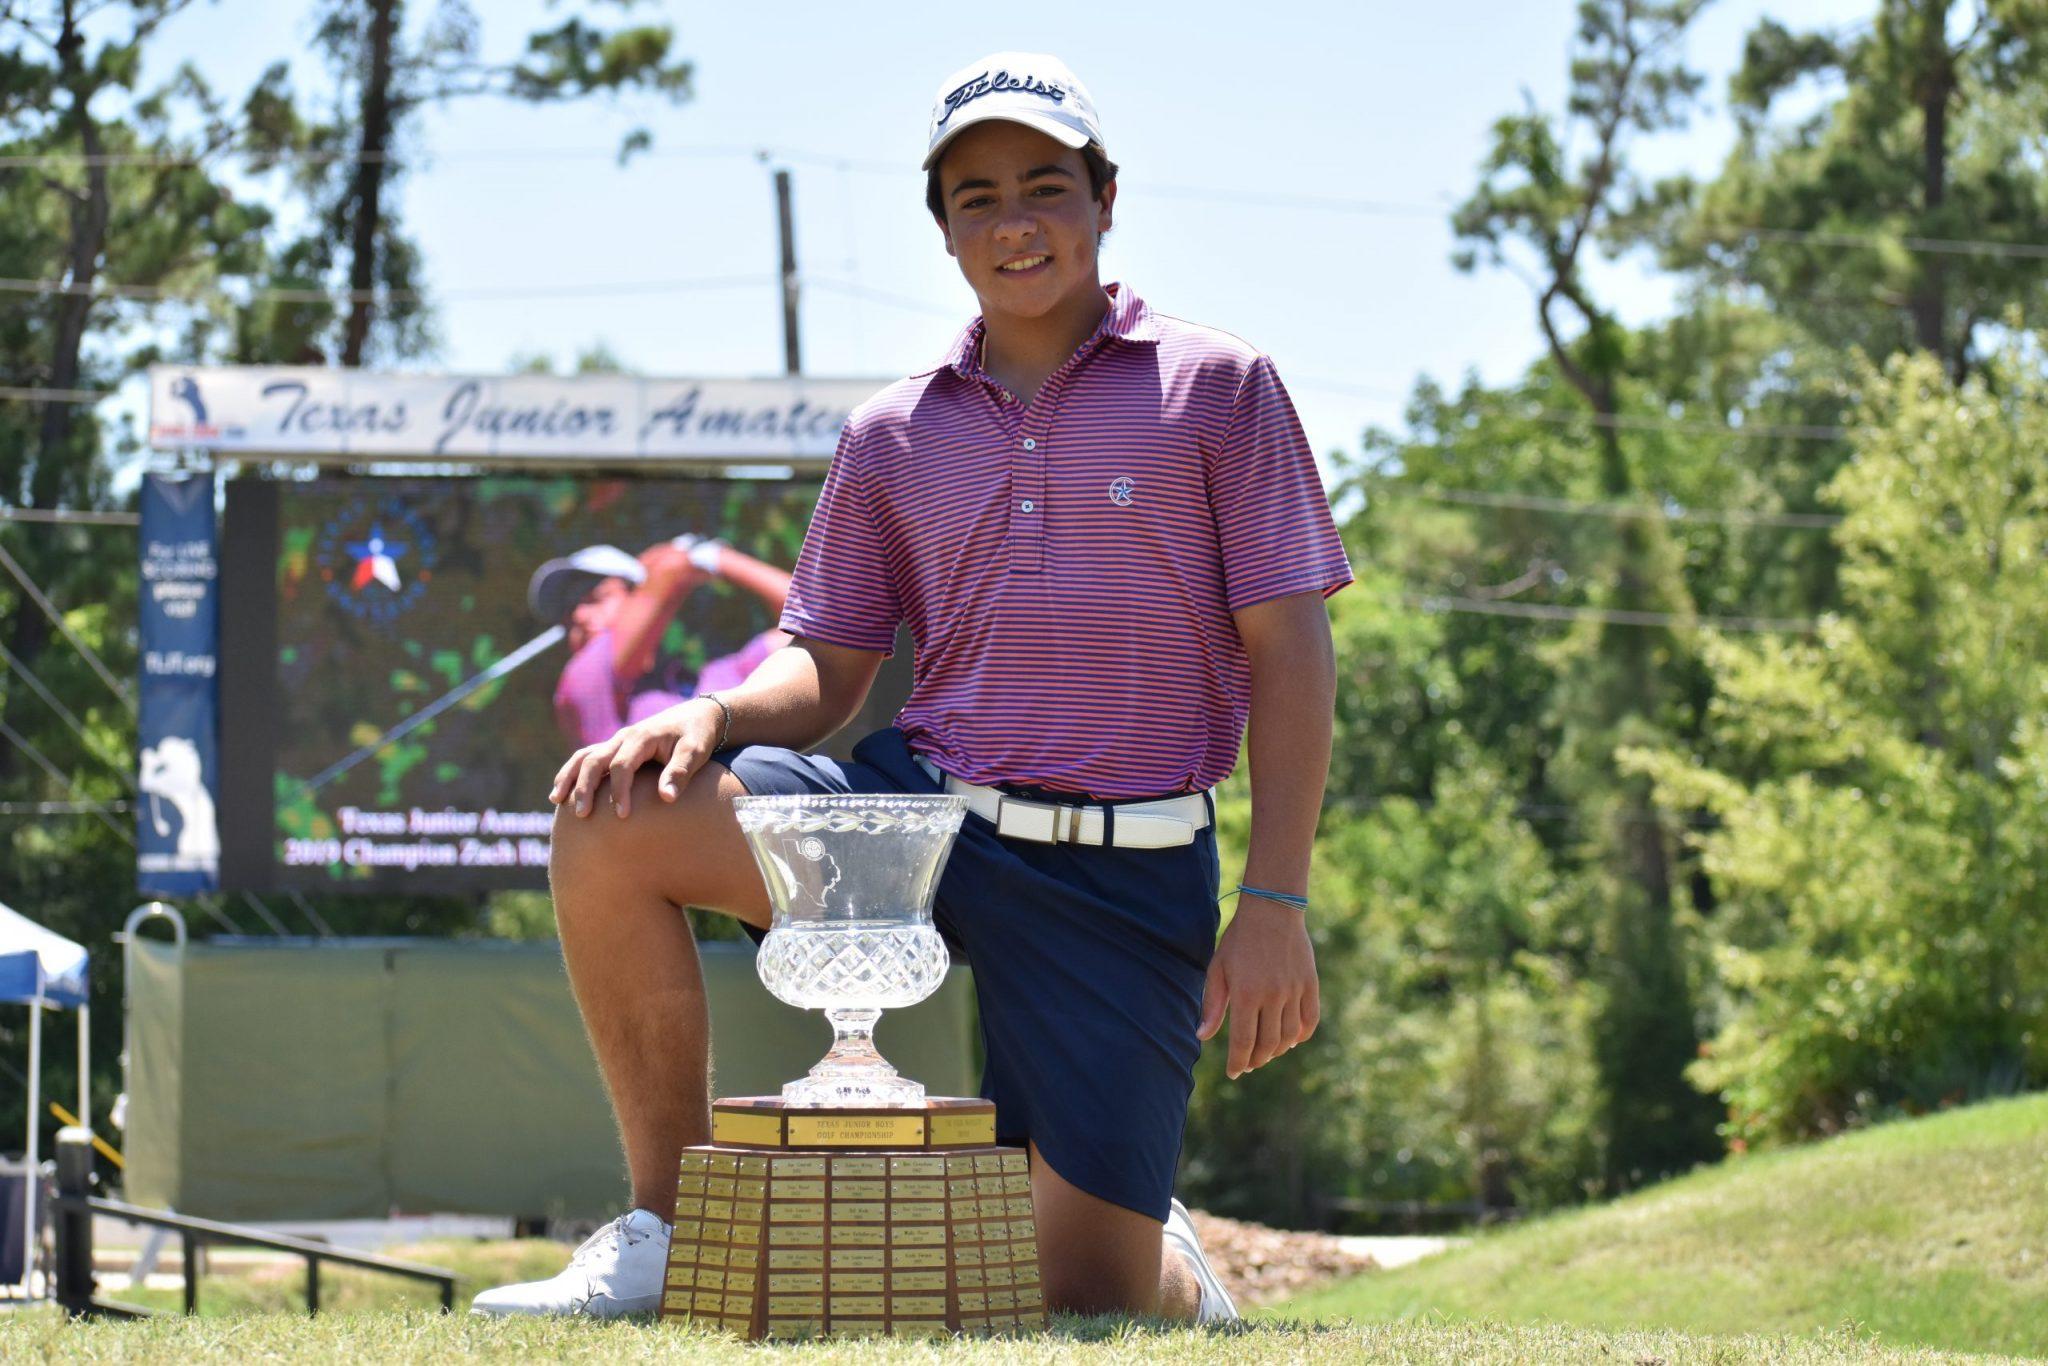 2019 Texas Junior Amateur Champion